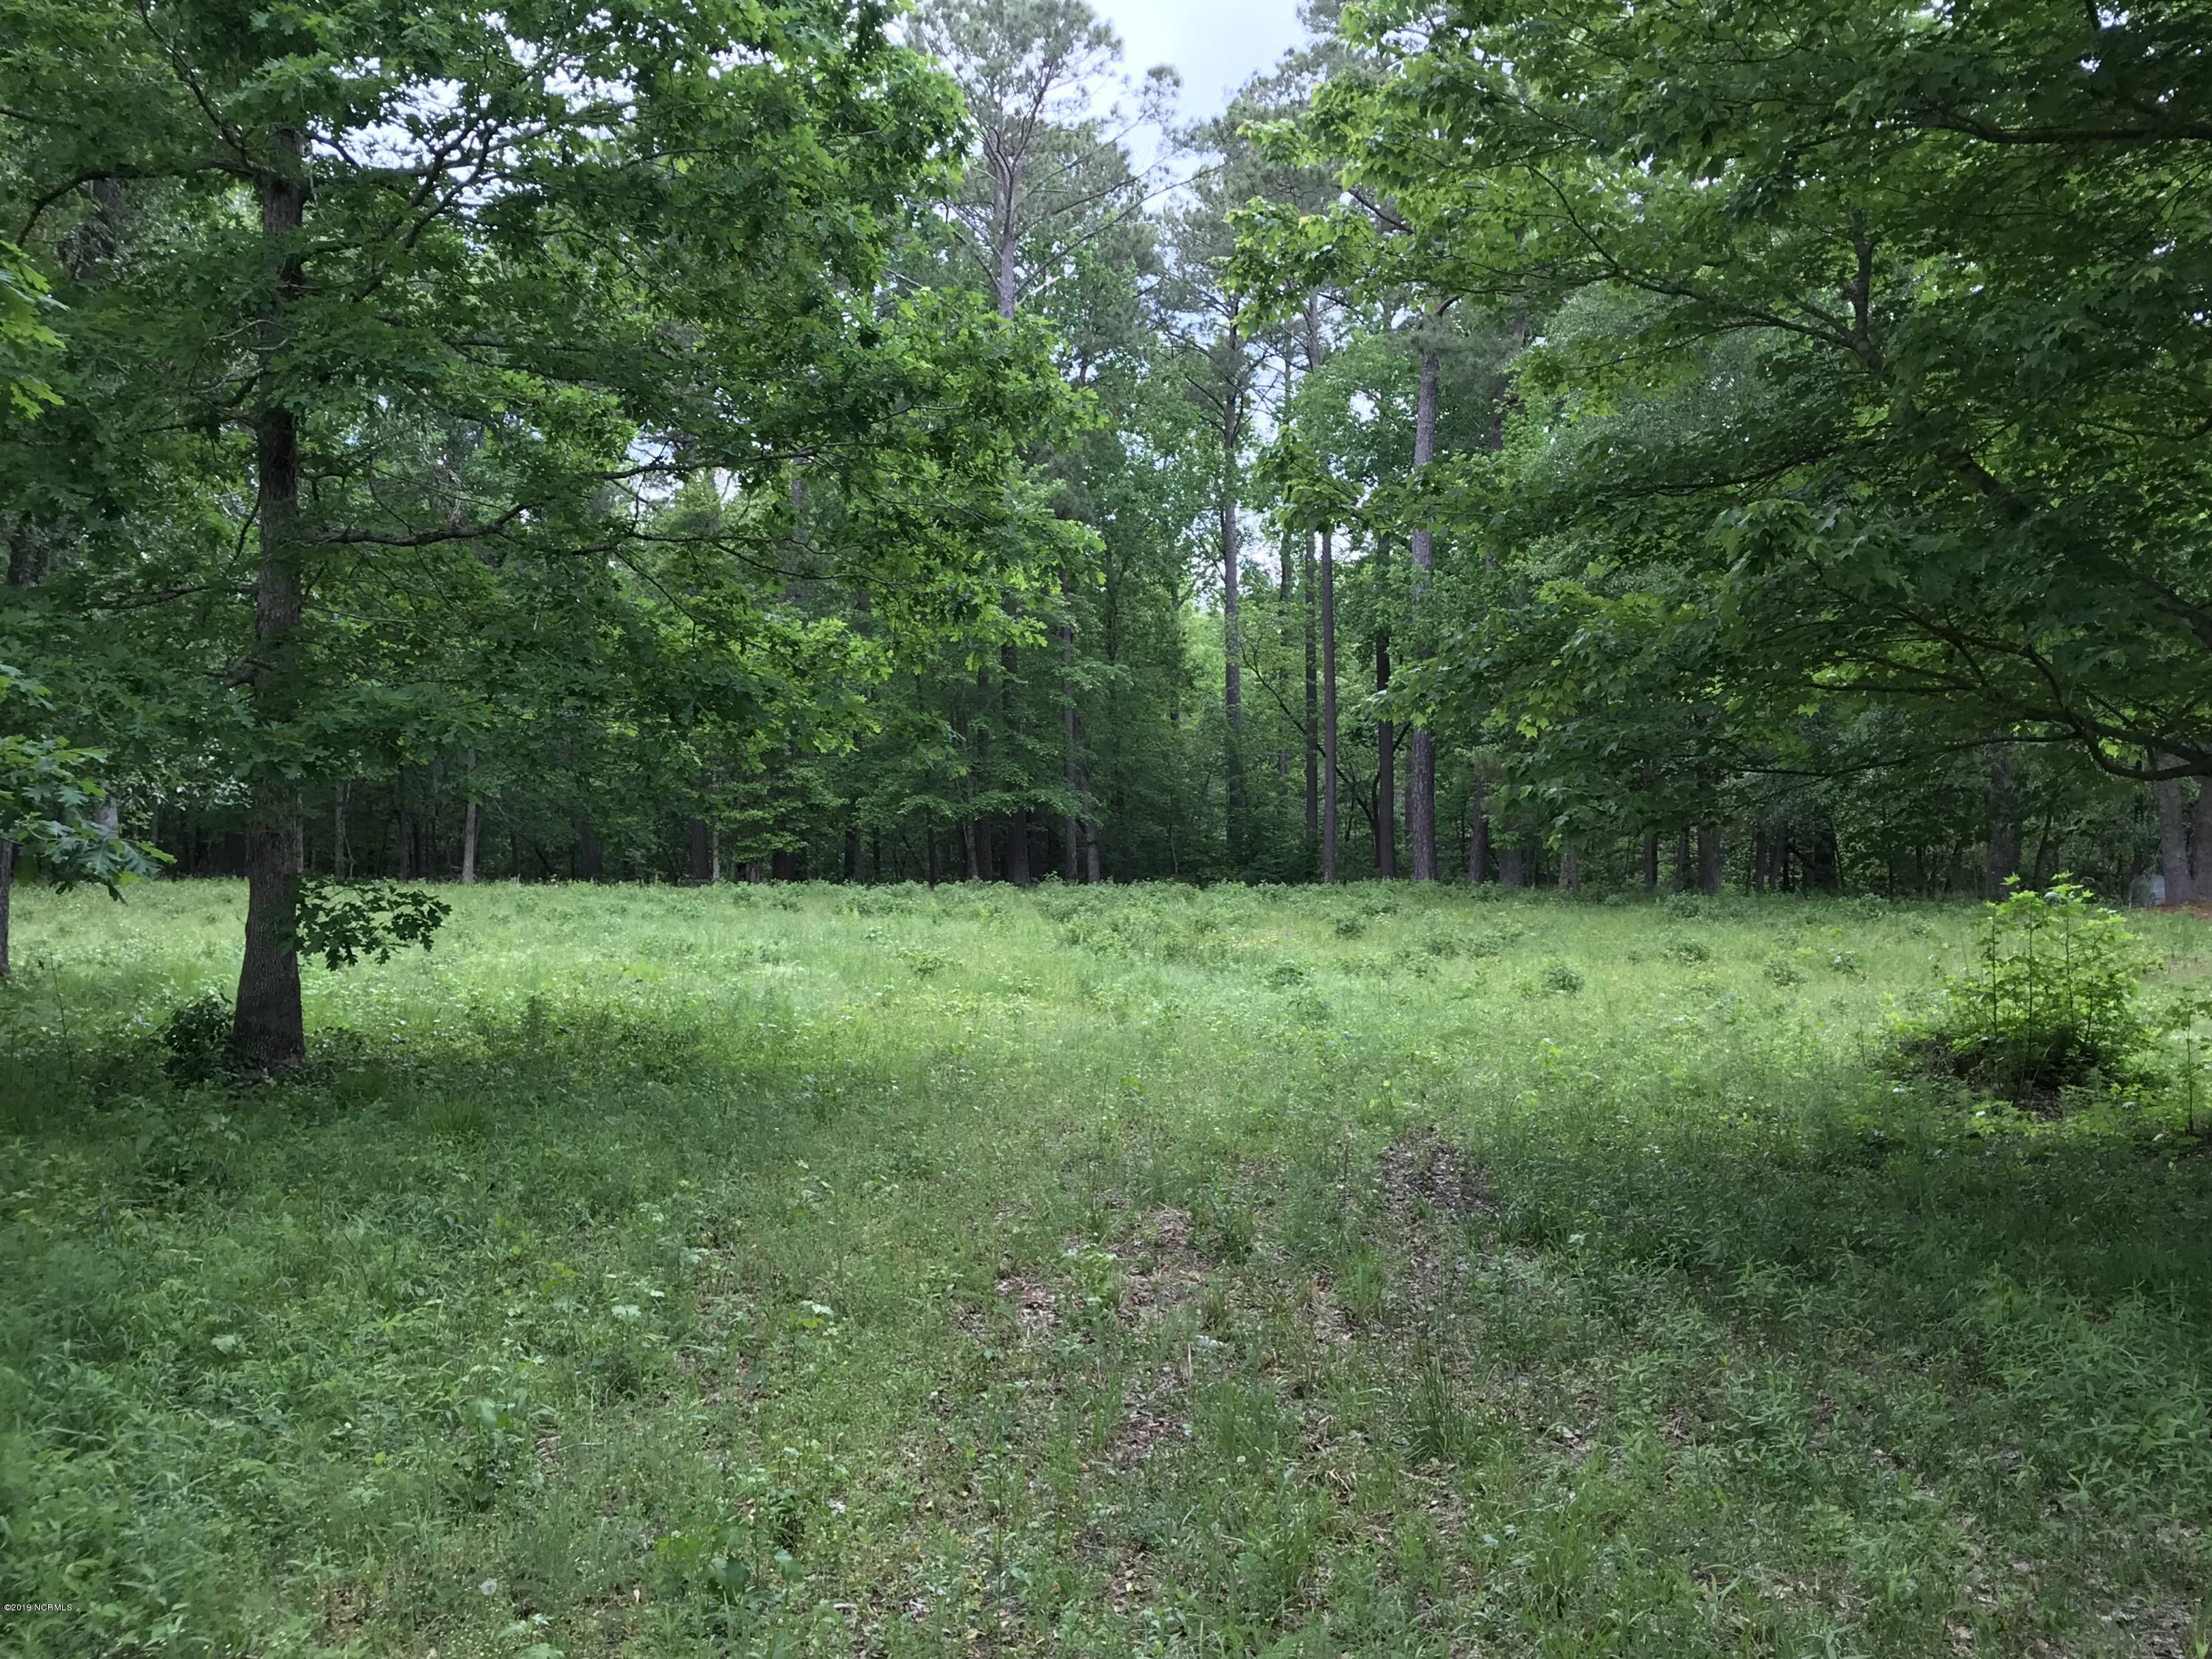 Lot 86 Harbour View Drive, Blounts Creek, North Carolina 27814, ,Residential land,For sale,Harbour View,100163897